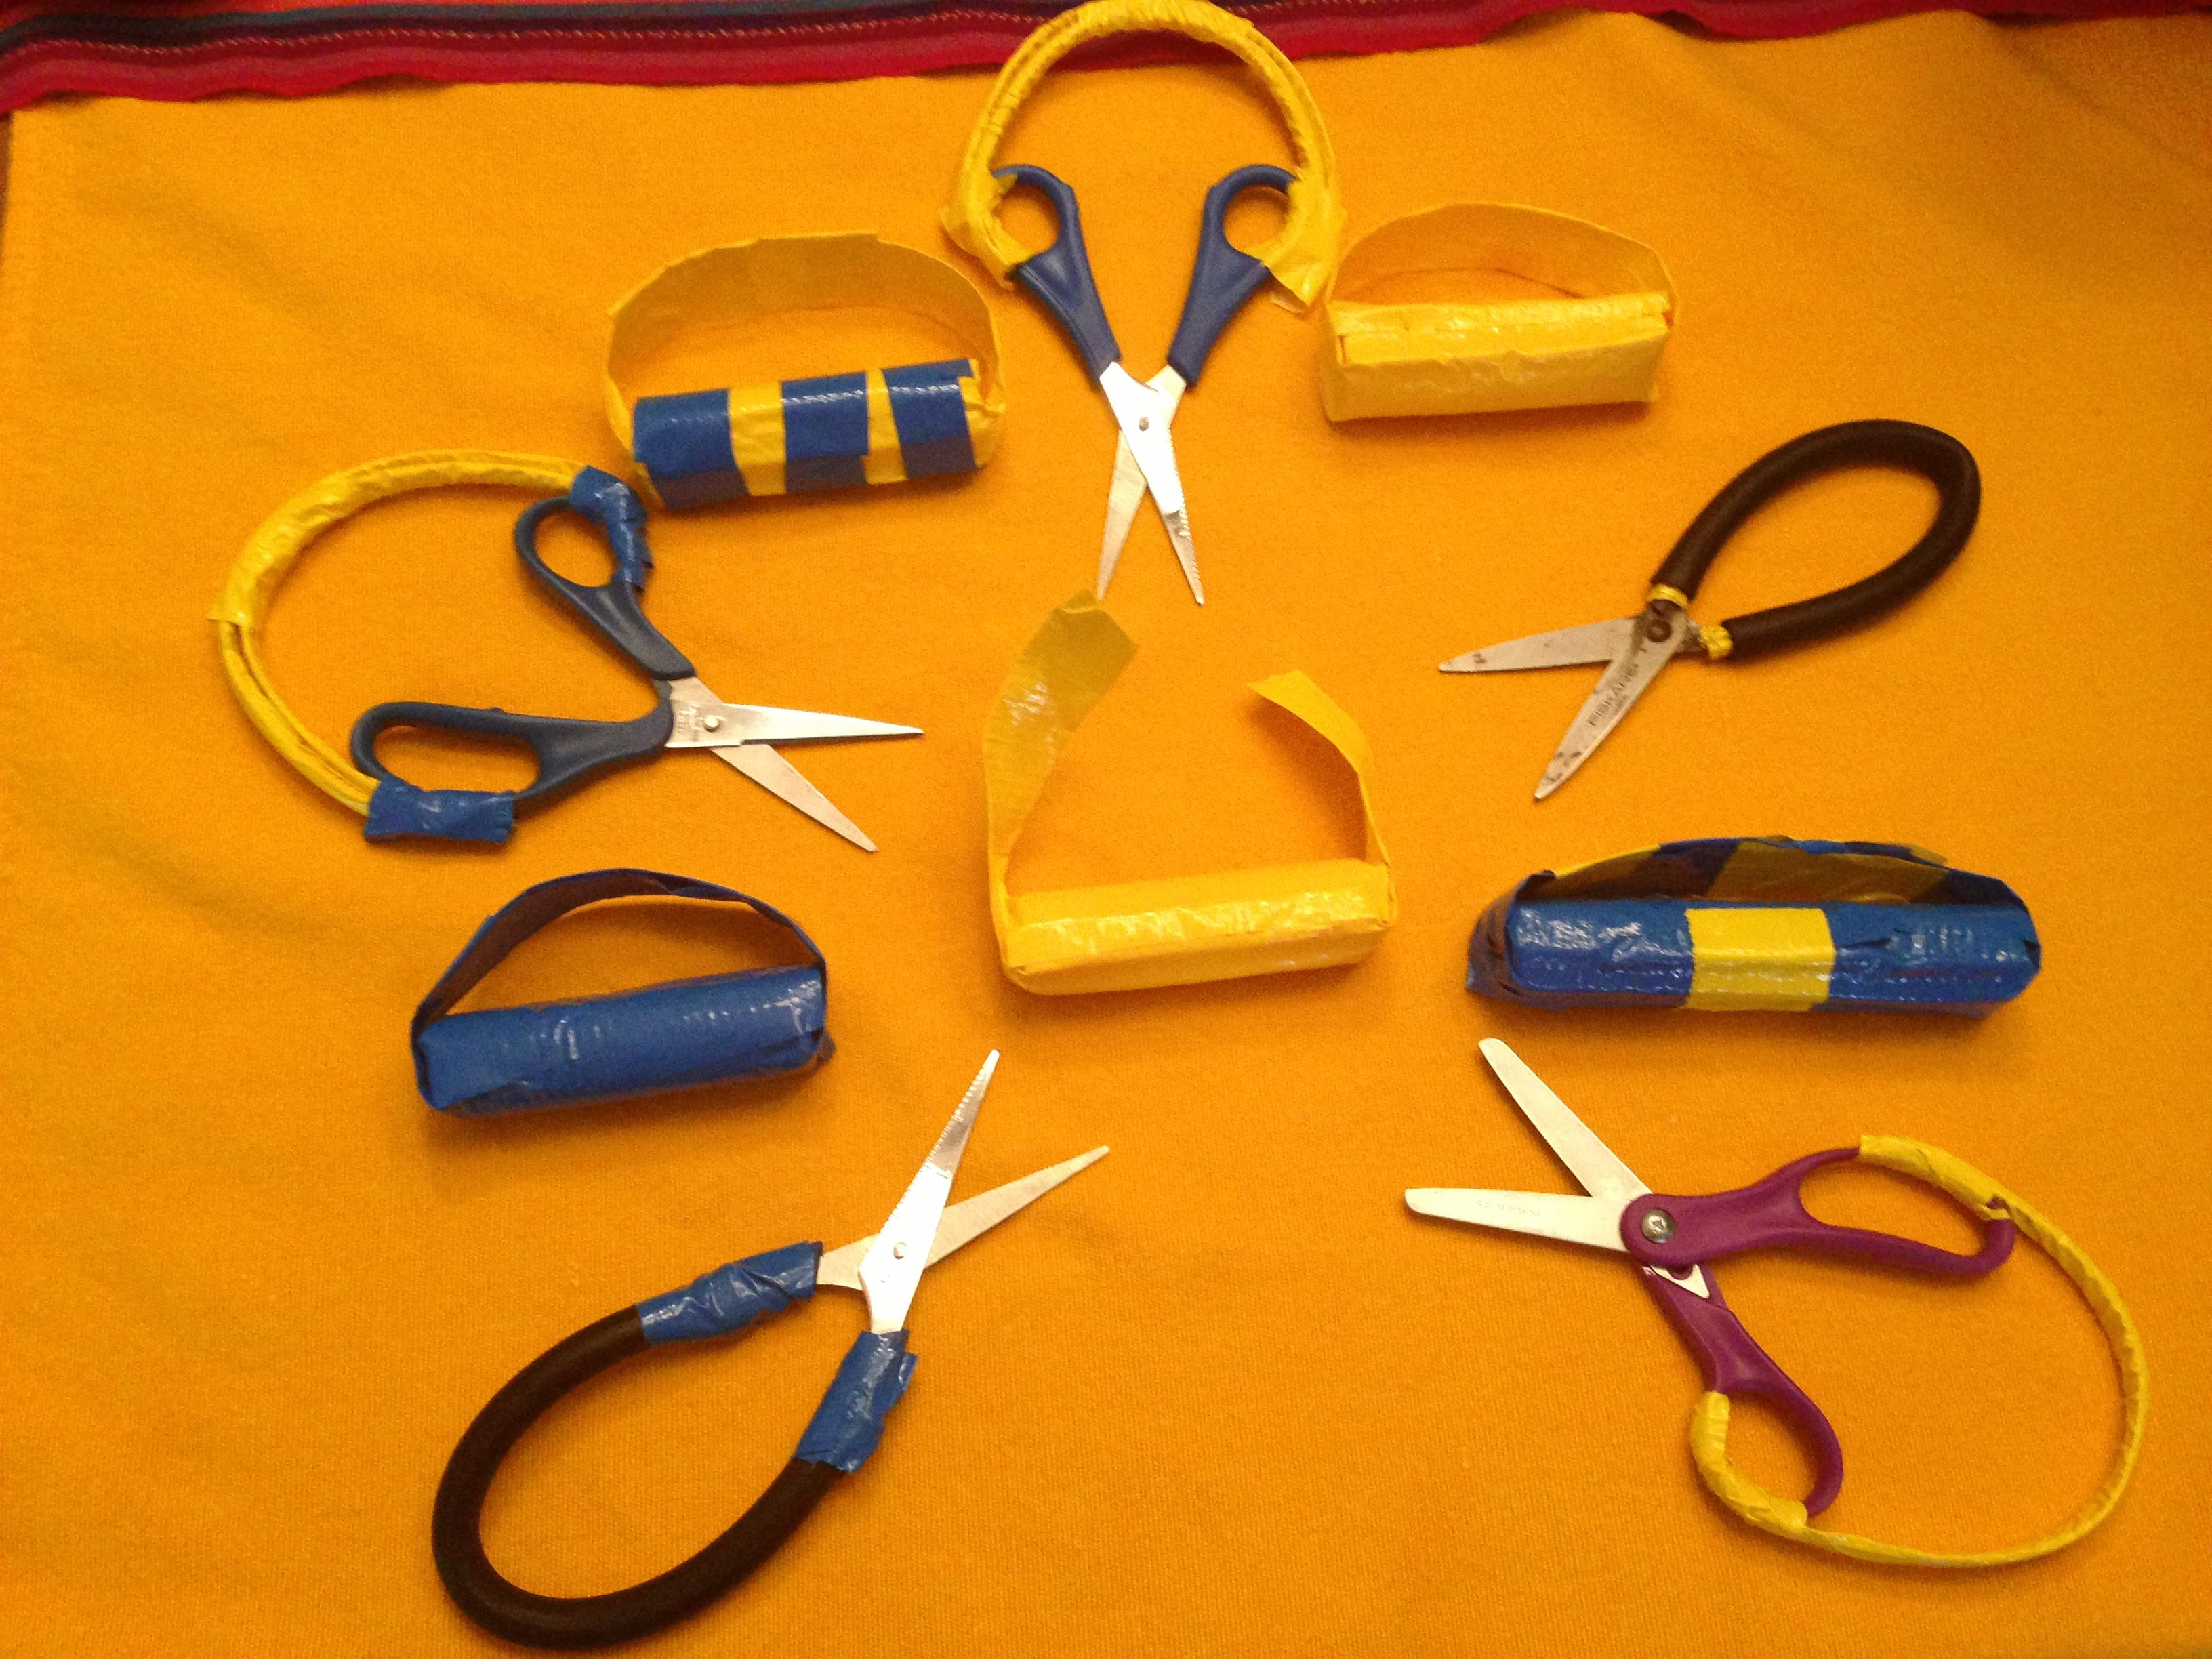 Diy Adaptive Spring Loaded Scissors And Universal Cuffs